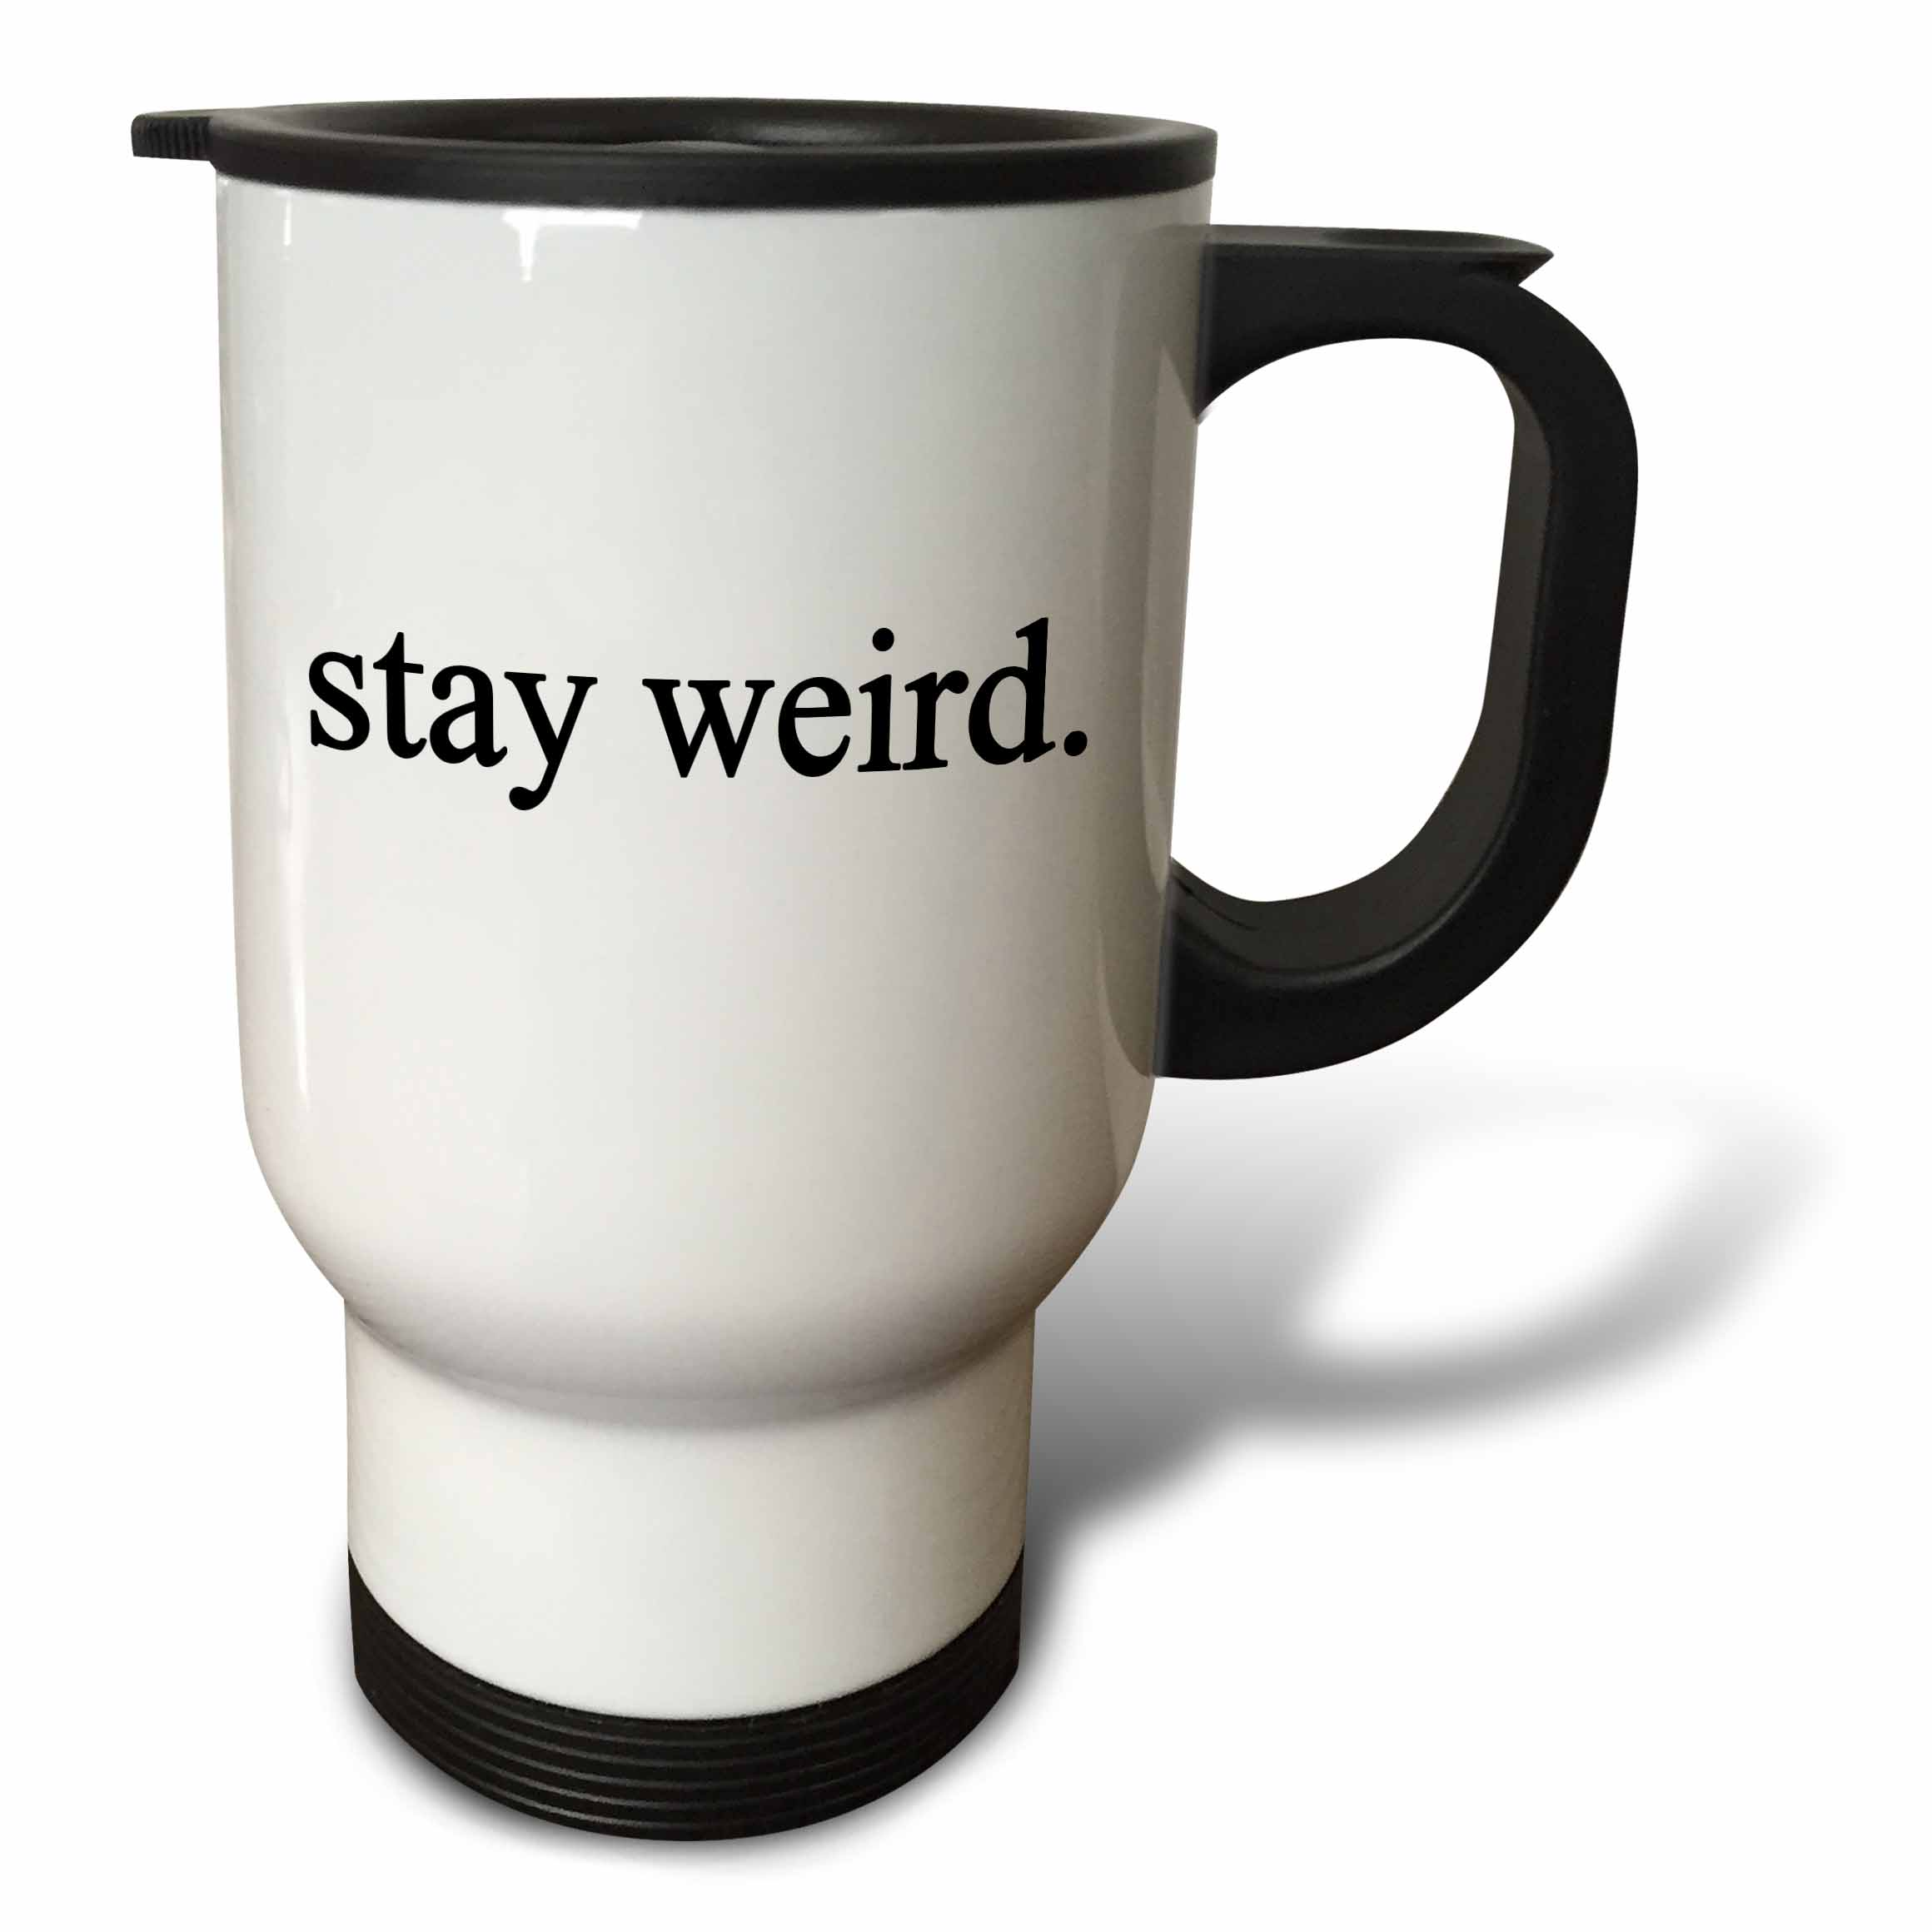 3dRose stay weird. Black., Travel Mug, 14oz, Stainless Steel